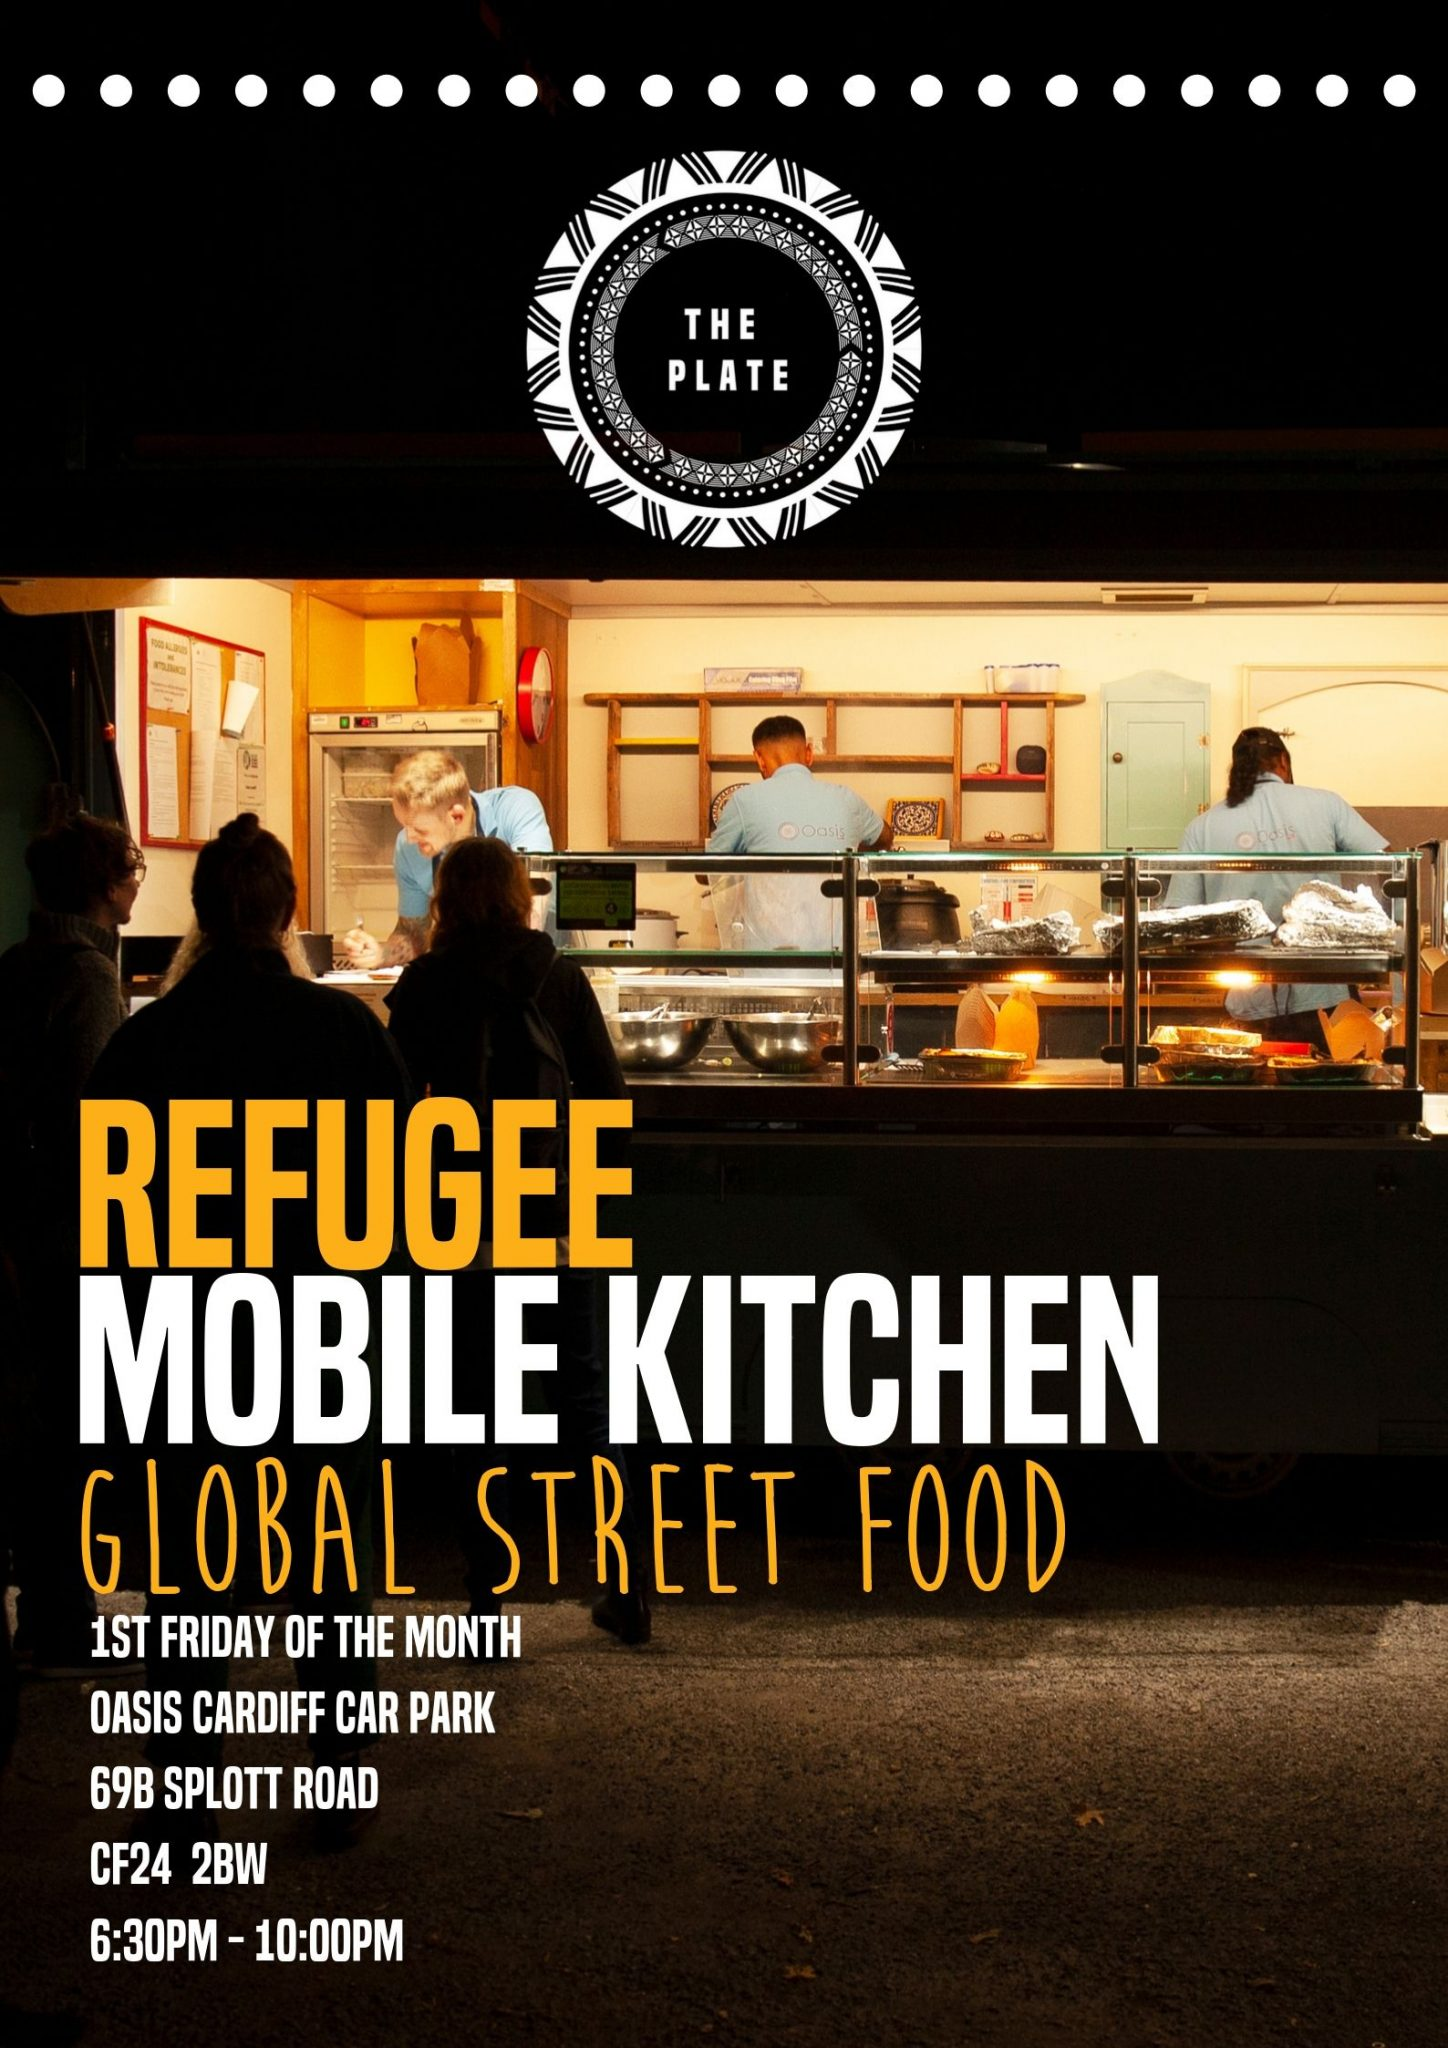 Refugee Mobile Kitchen Posters_Flyers_Menu